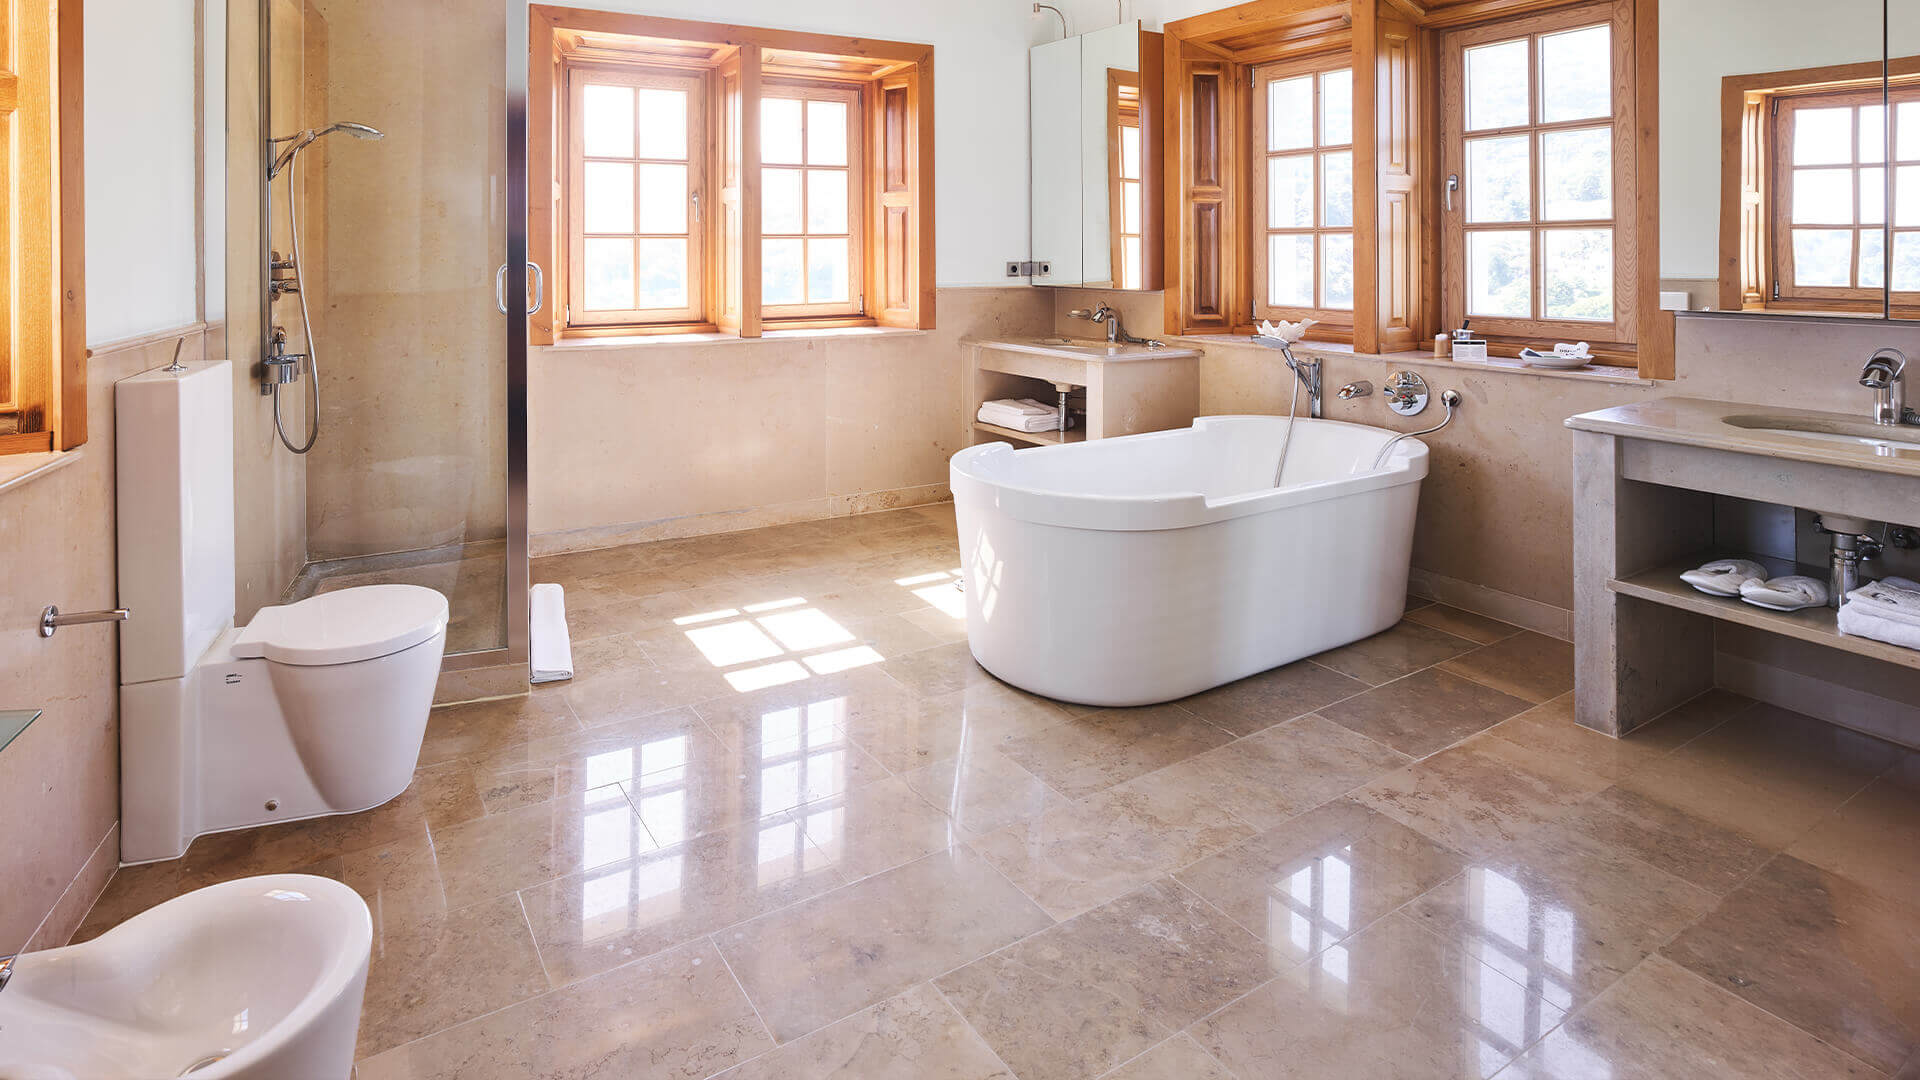 Chateau outside Nice marble bathroom with bathtub